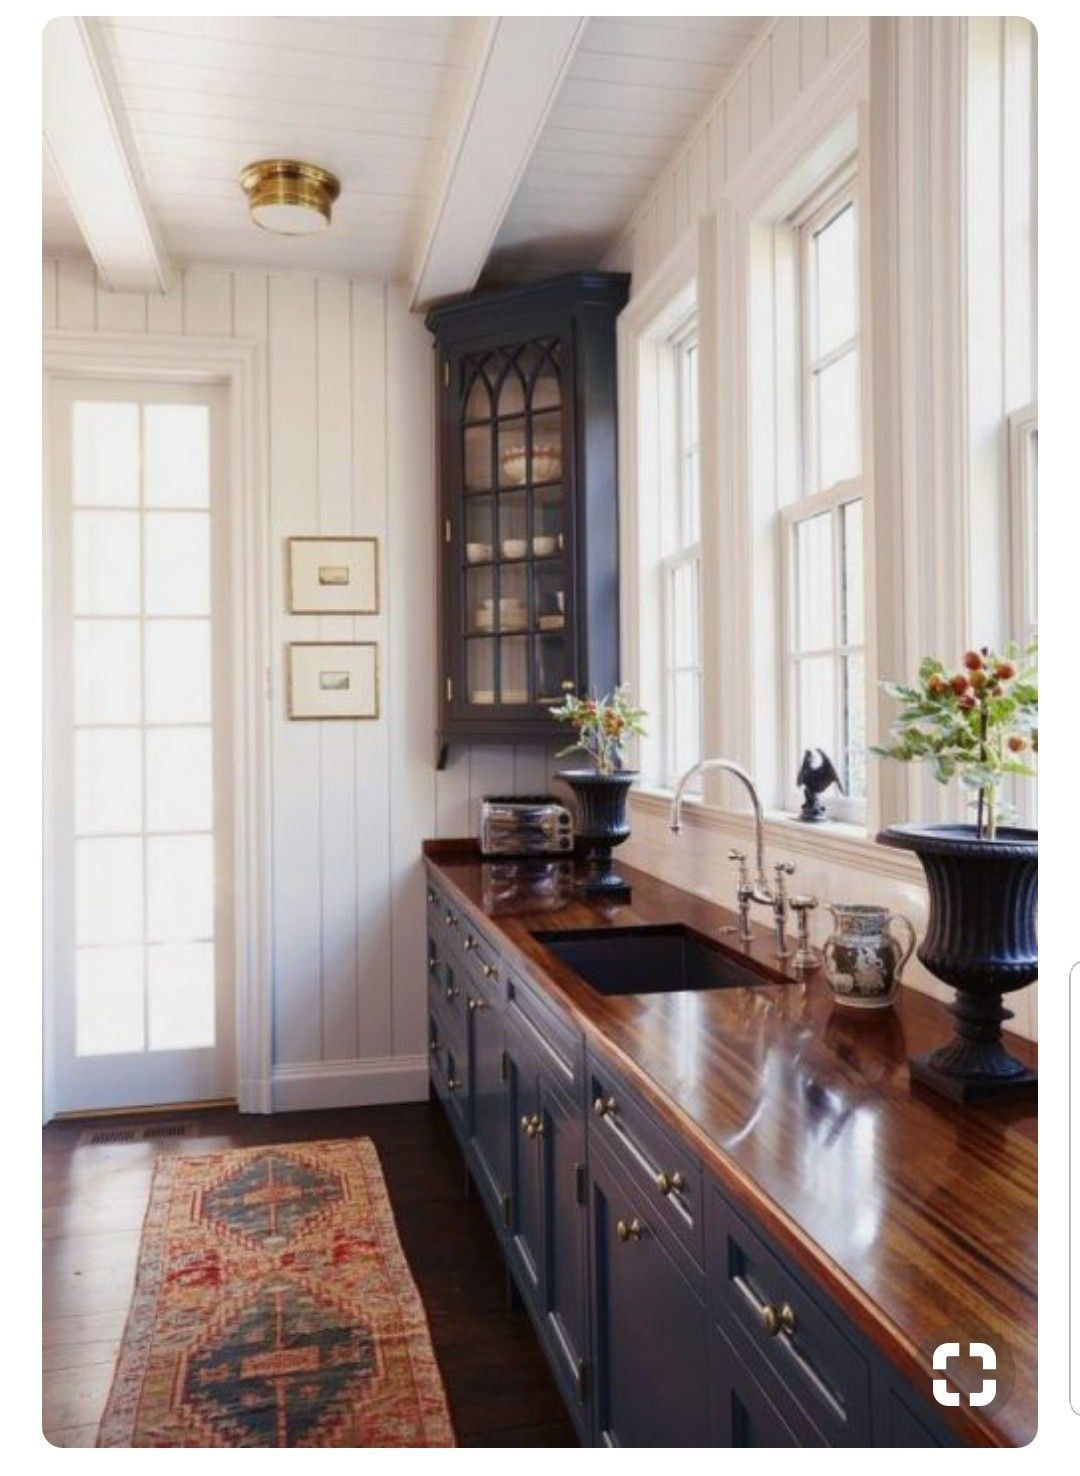 3 panel kitchen window  pin by i d on kitchen remodel in   pinterest  kitchen remodel